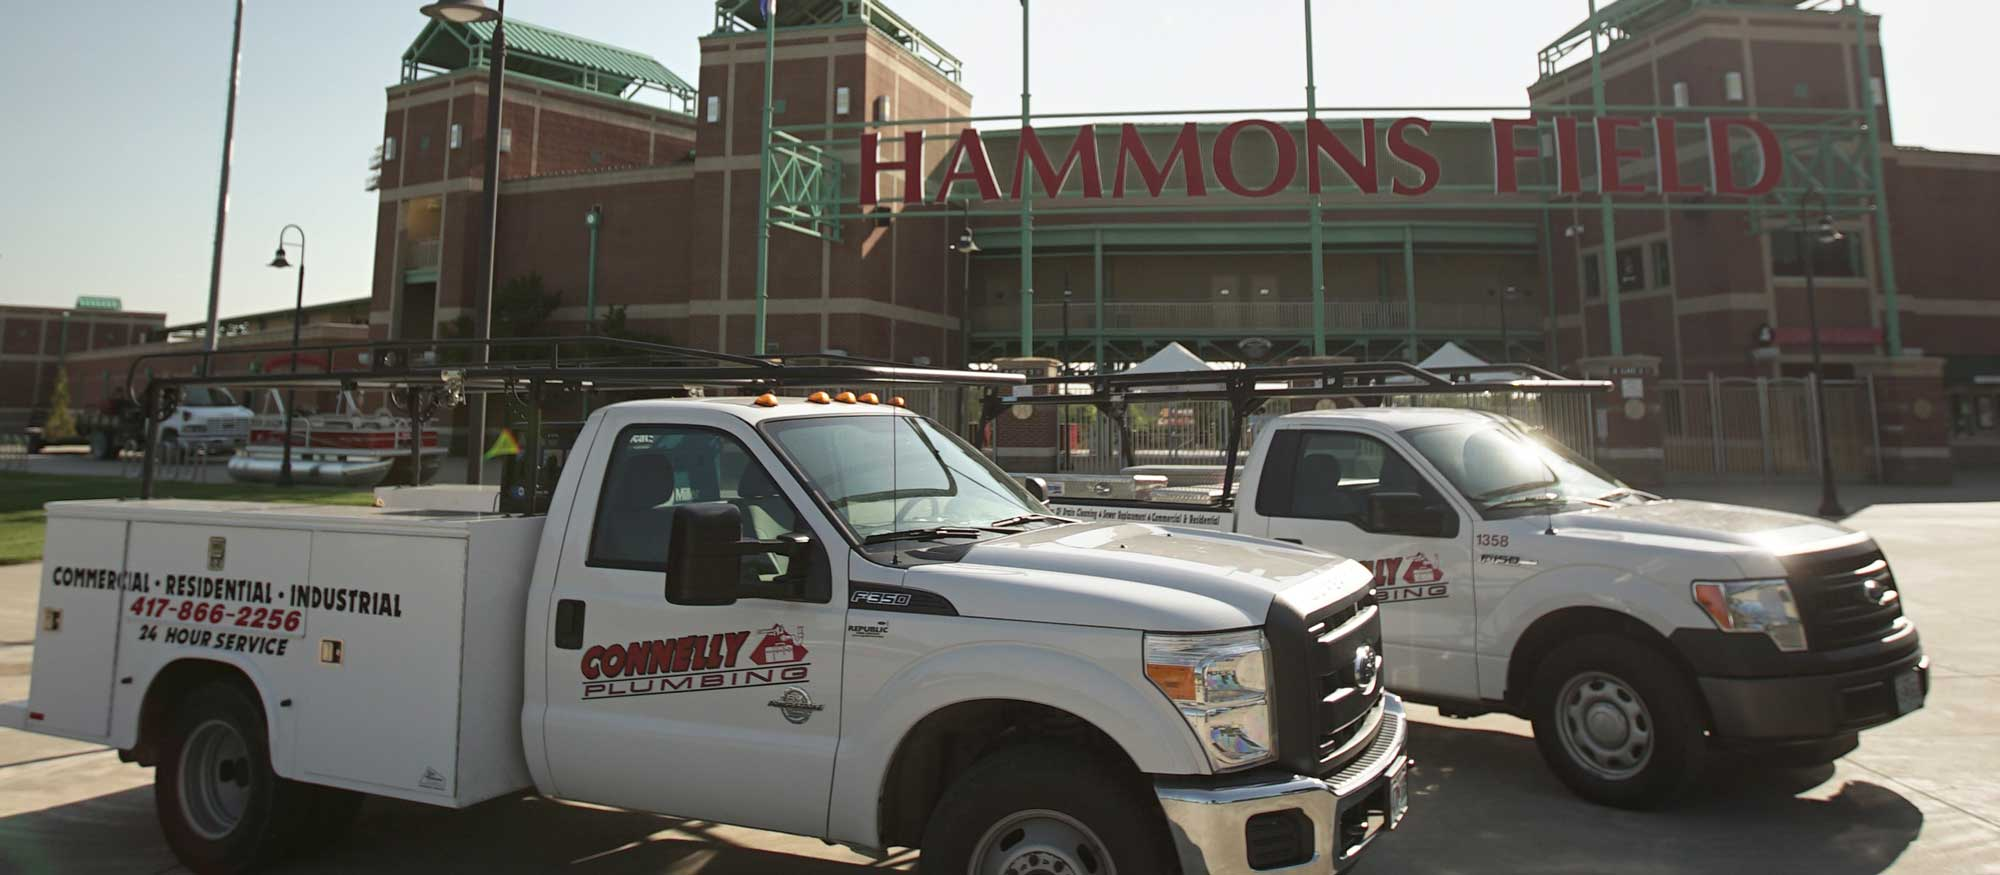 connelly trucks at hammons field